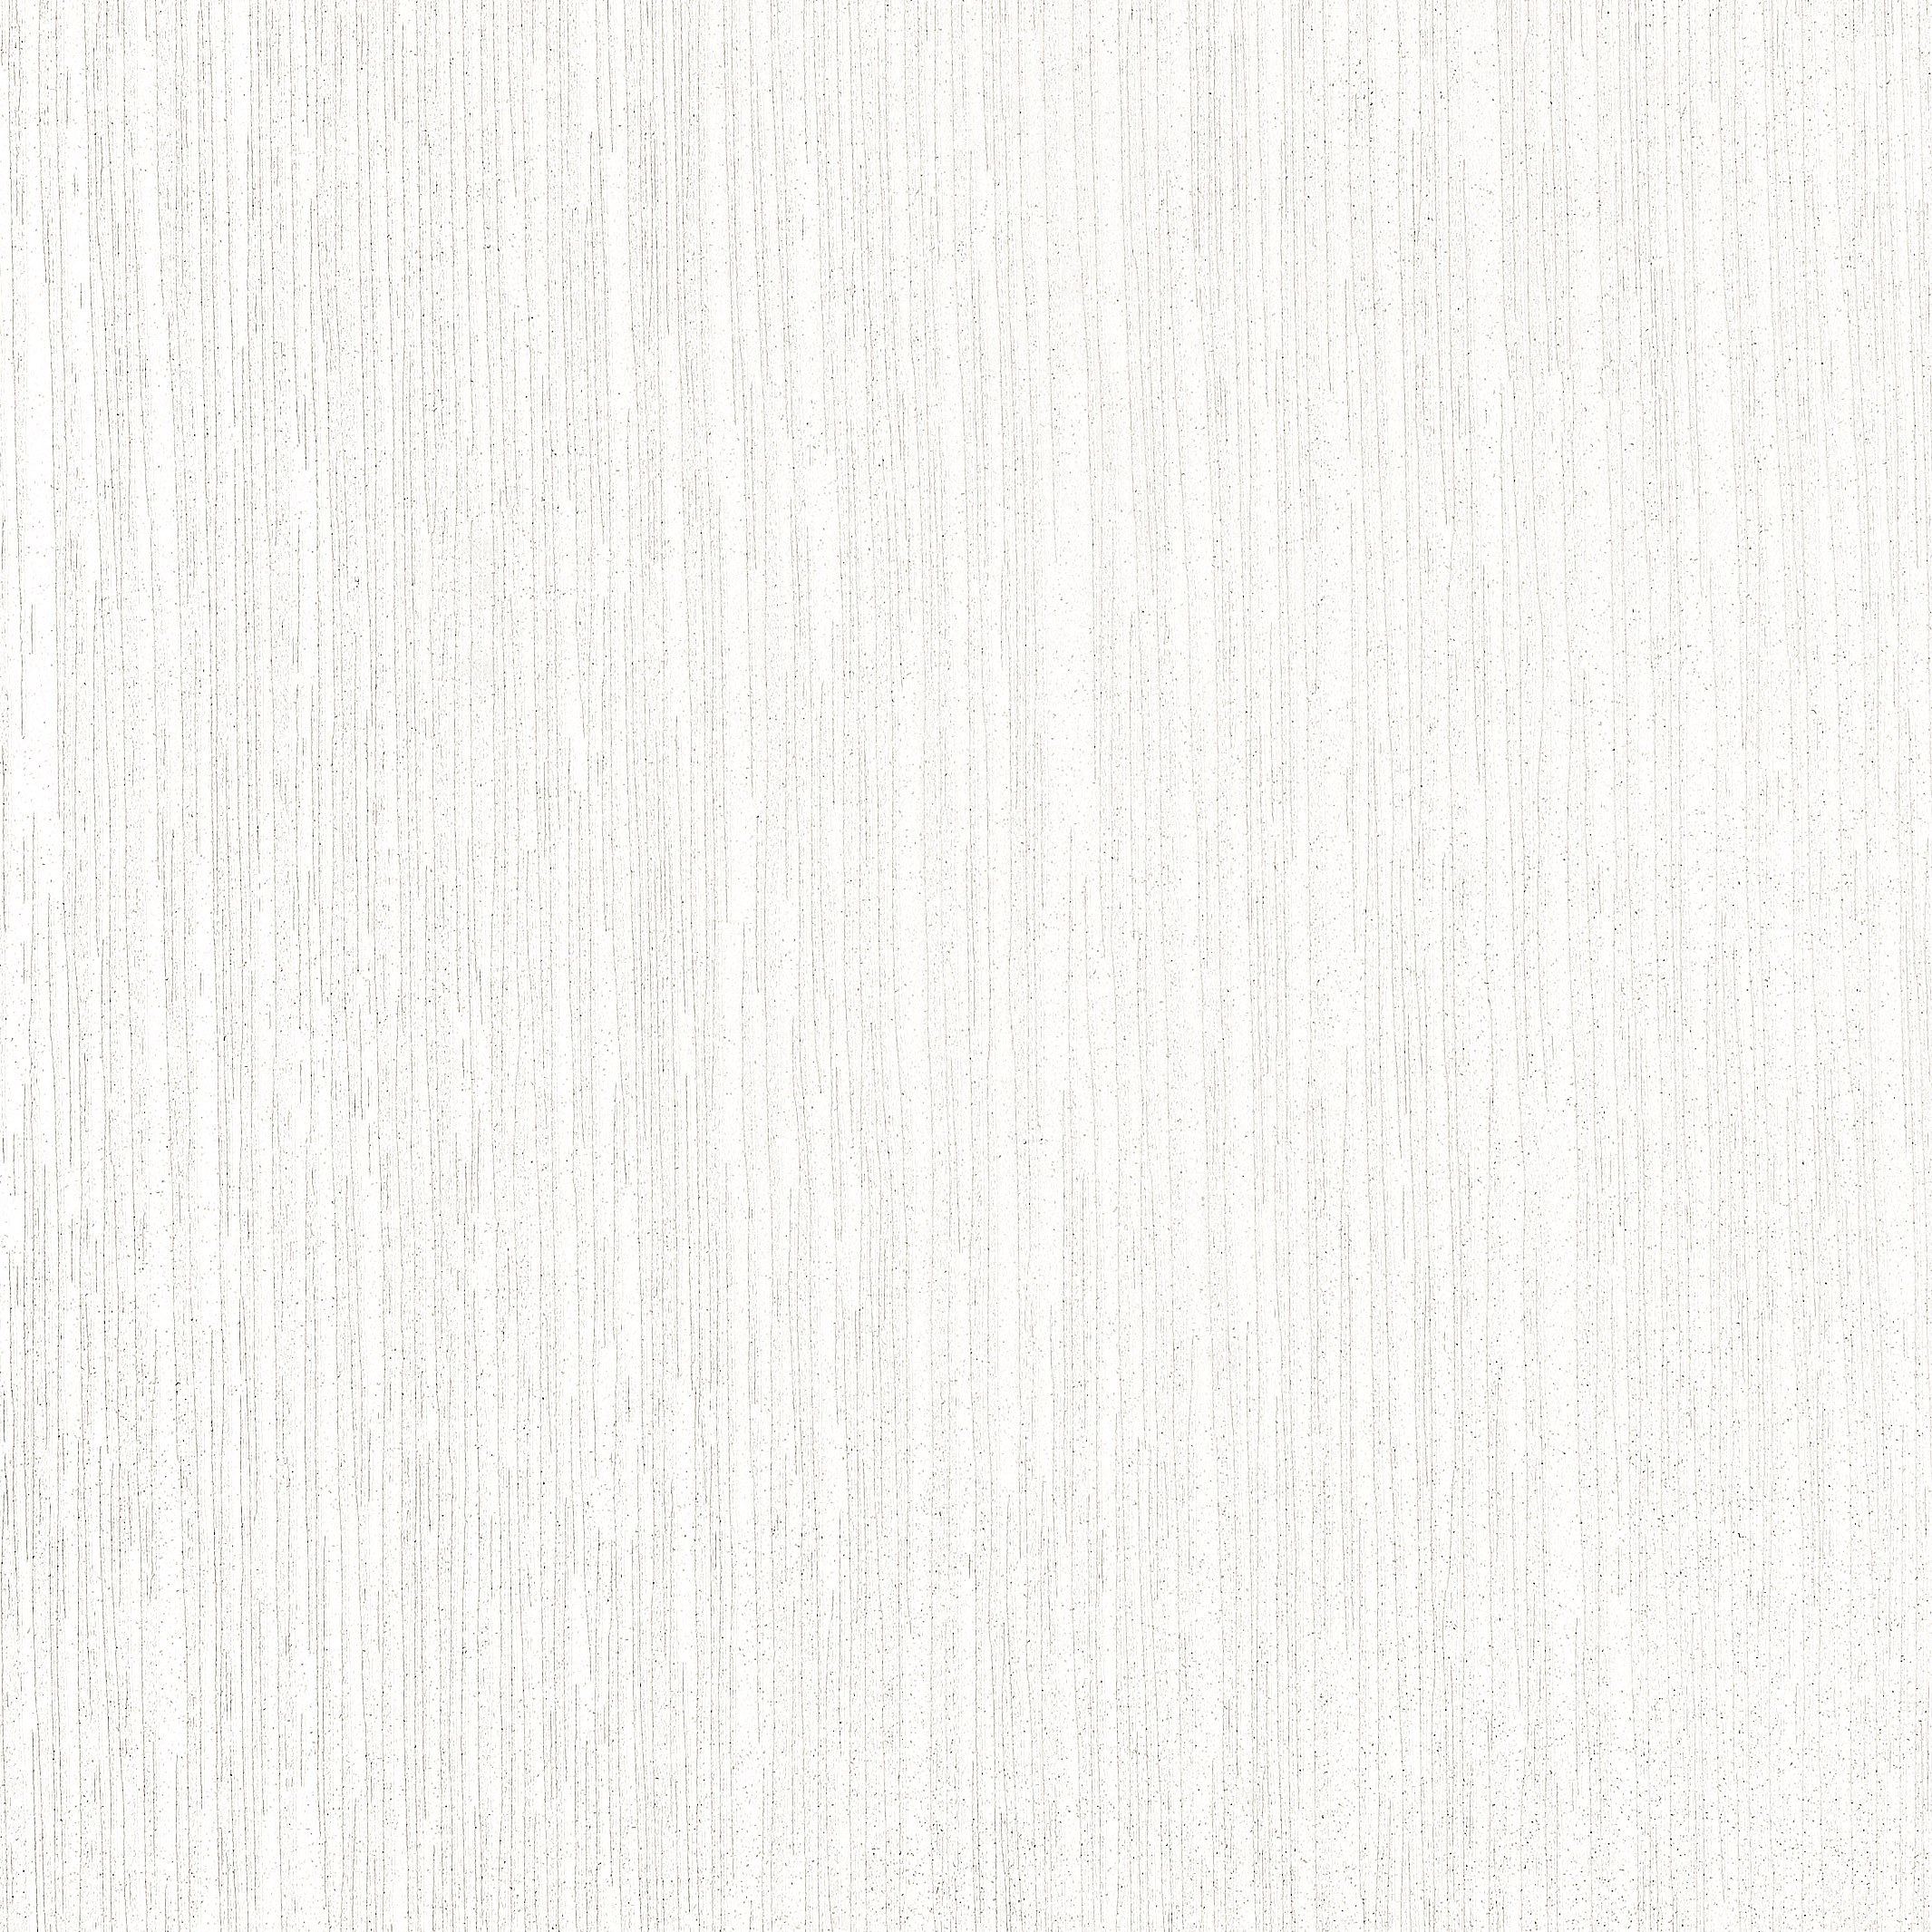 Porcelain Tile | Bentley Series - HSLBW60290 | by Hospitality Finishes